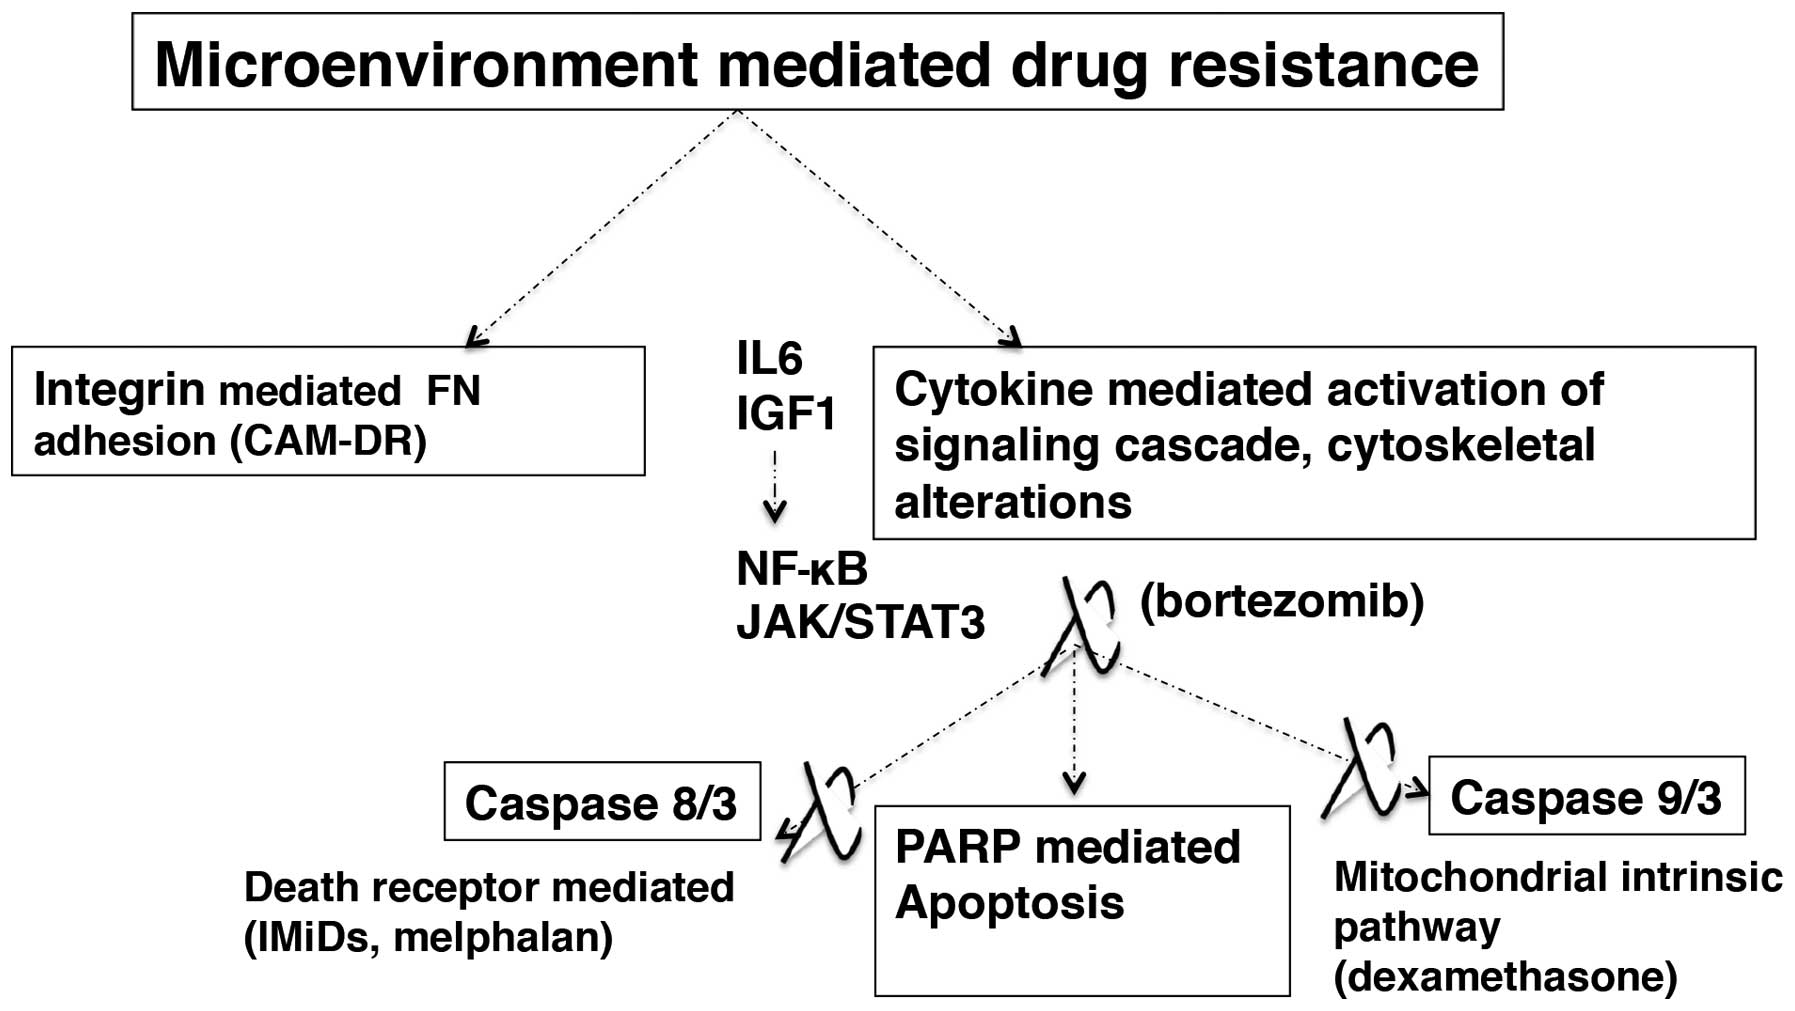 Multiple Myeloma And Persistence Of Drug Resistance In The Age To Verify That Resistances Series Do Indeed Add Let Us Consider Microenvironment Mediated Pathways Mm Cell Adhesion Cytokine Signaling Cascade Activation